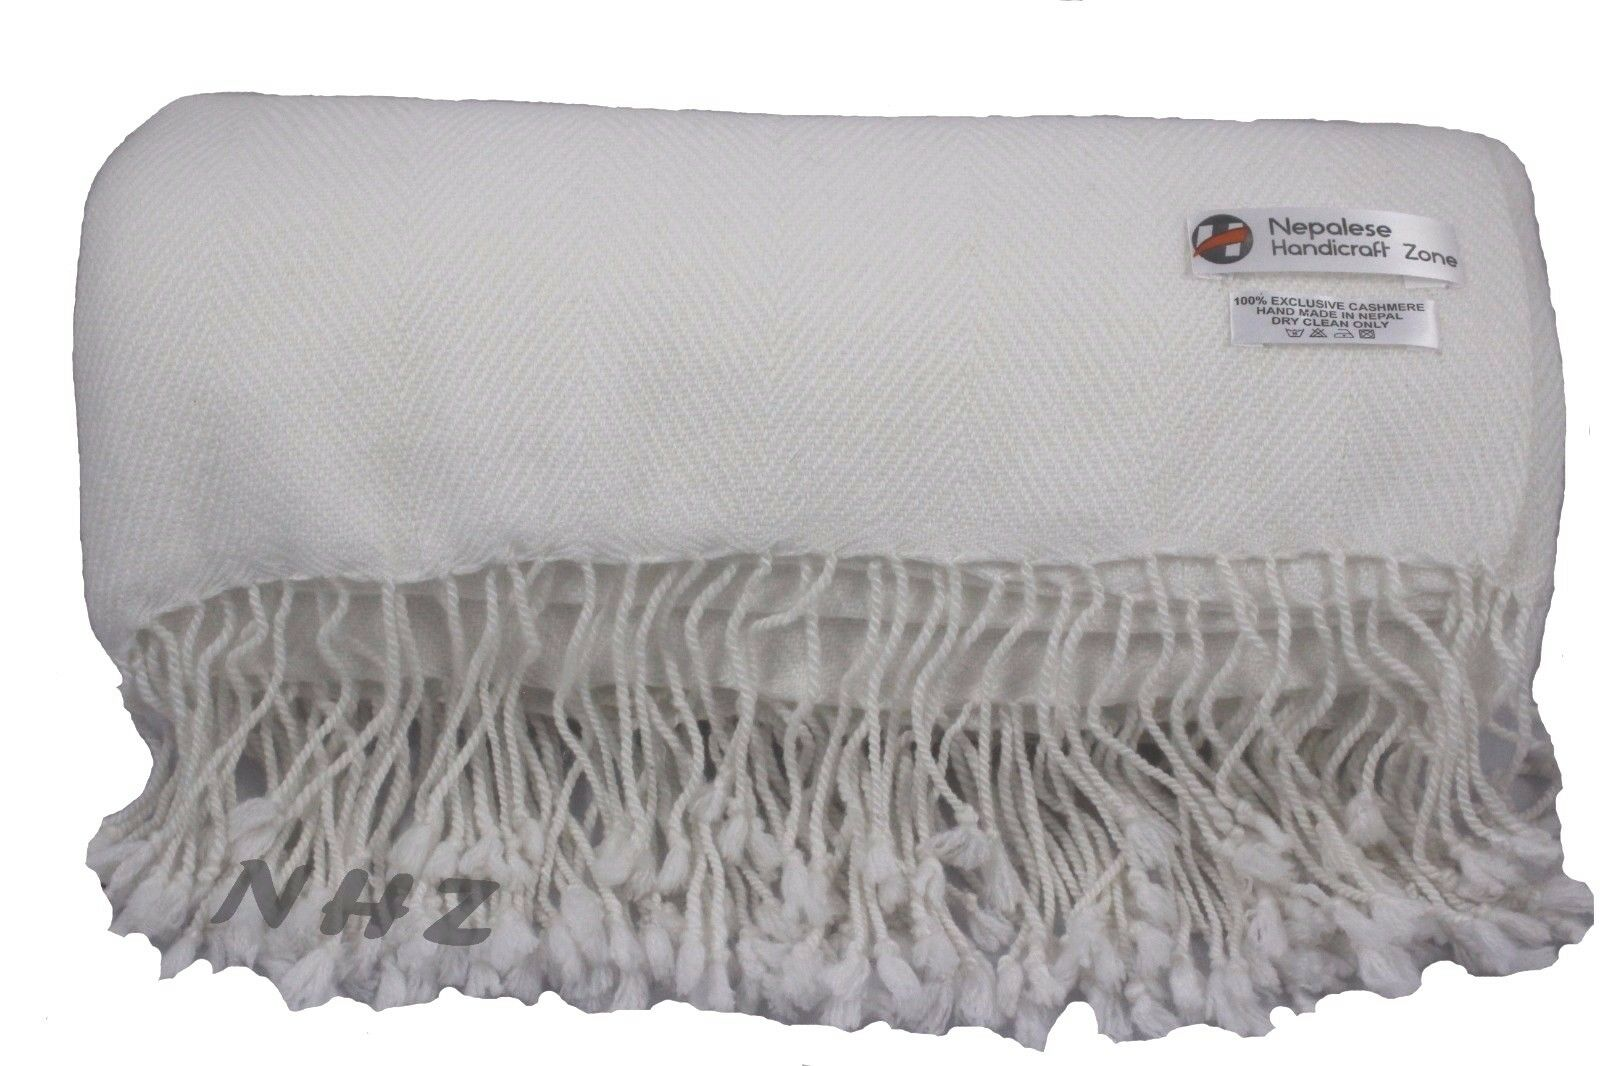 Himalayan CashmereThrowNatural Weiß FarbeBlanket54 x108 Hand Made in Nepal